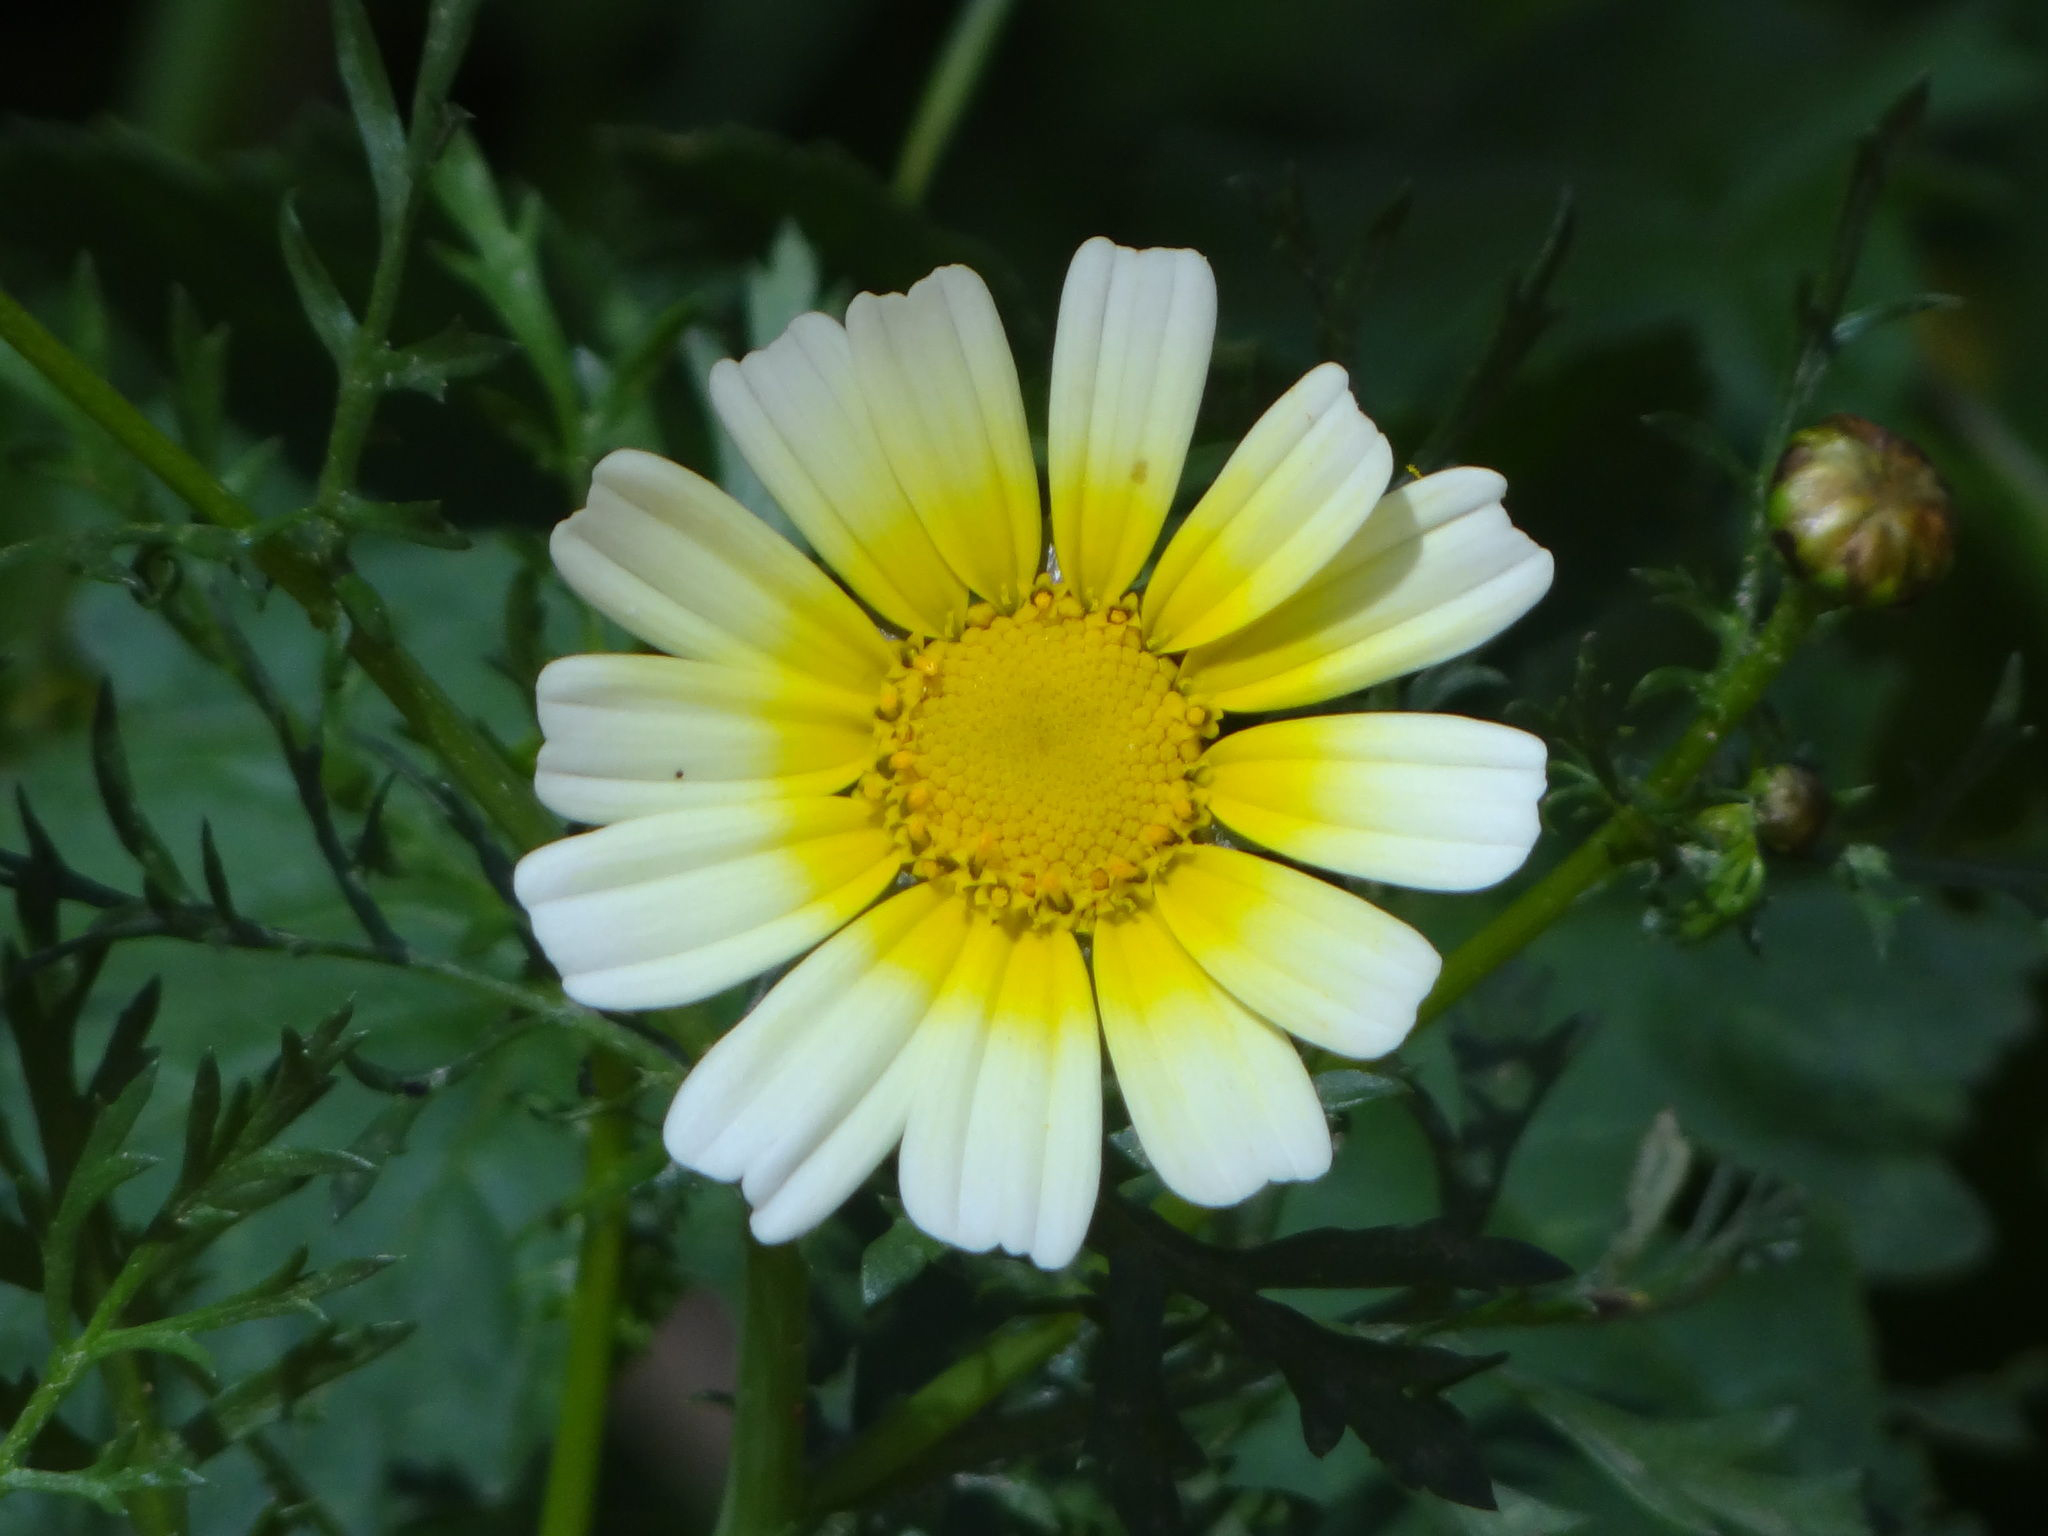 Crown daisy facts health benefits and nutritional value close up flower of crown daisy izmirmasajfo Choice Image